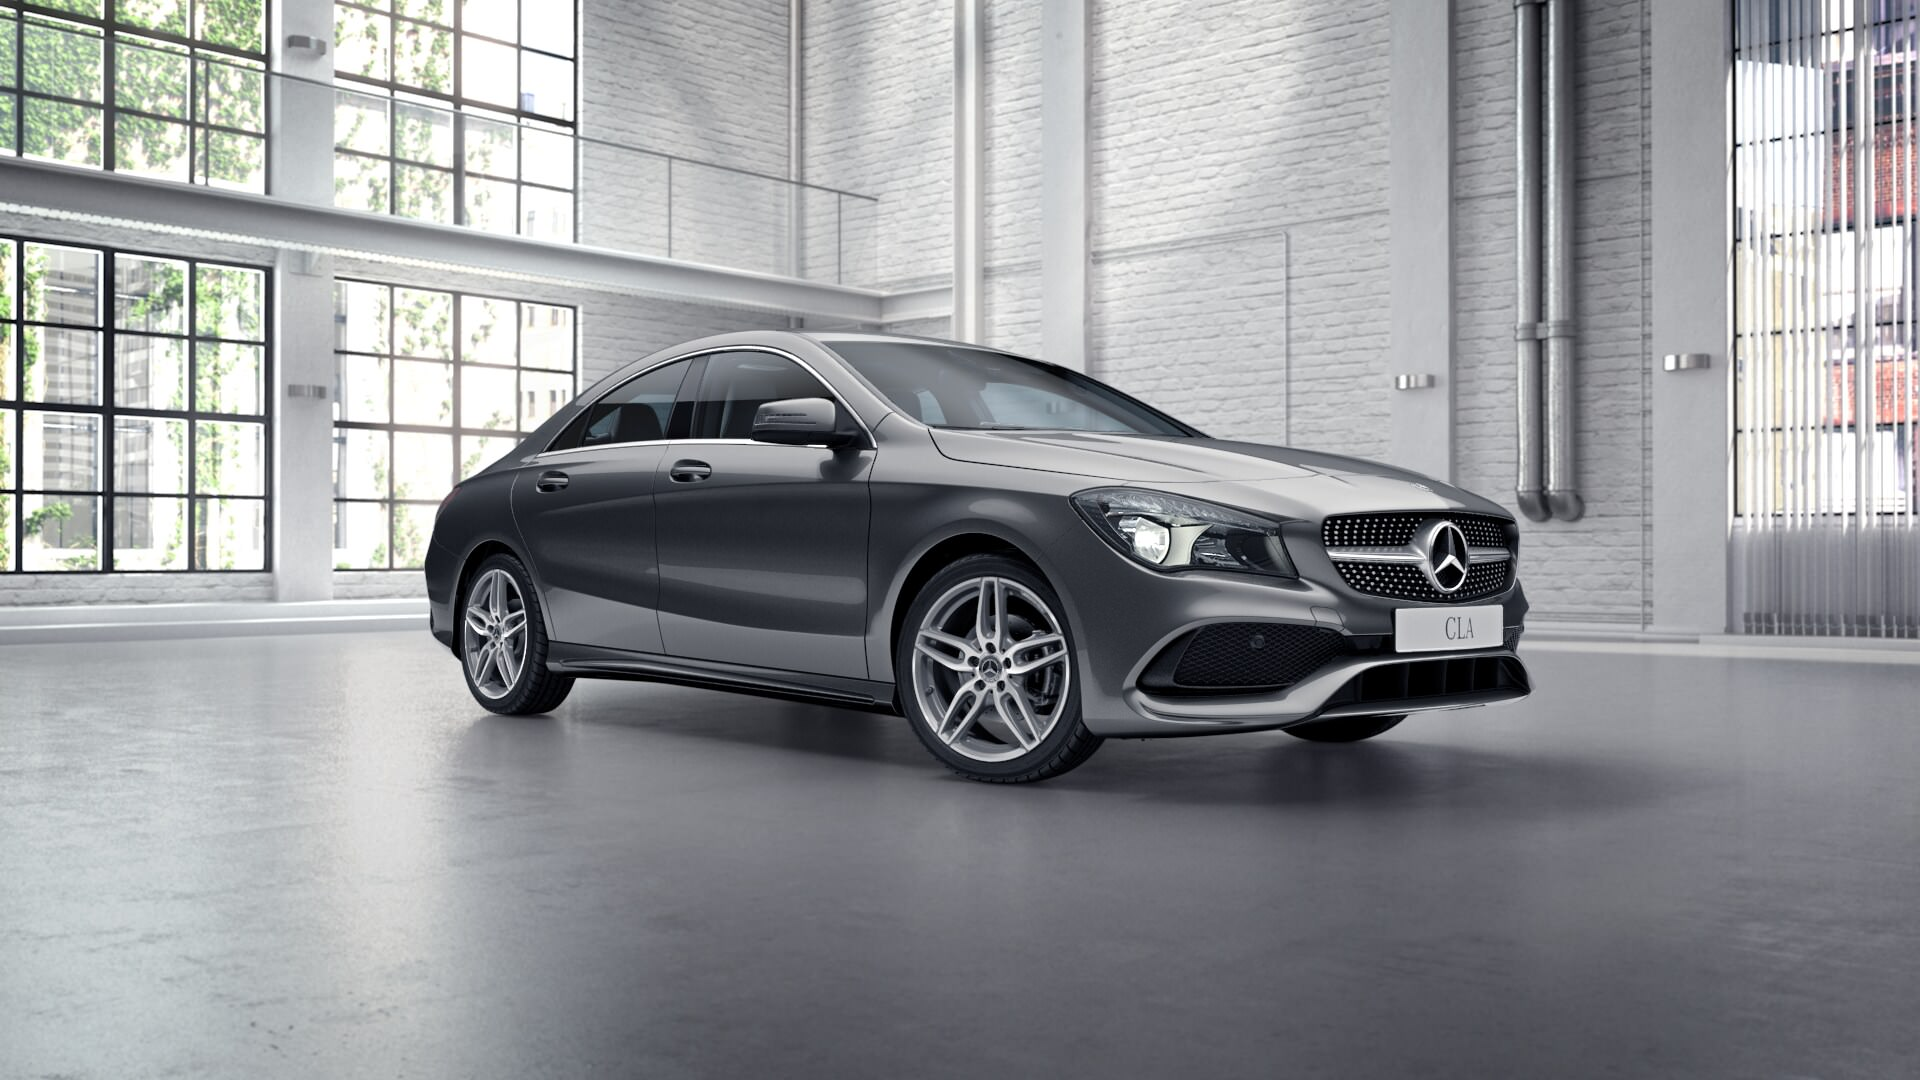 Mercedes-Benz CLA Class Coupe 180 AMG Line Edition Manual